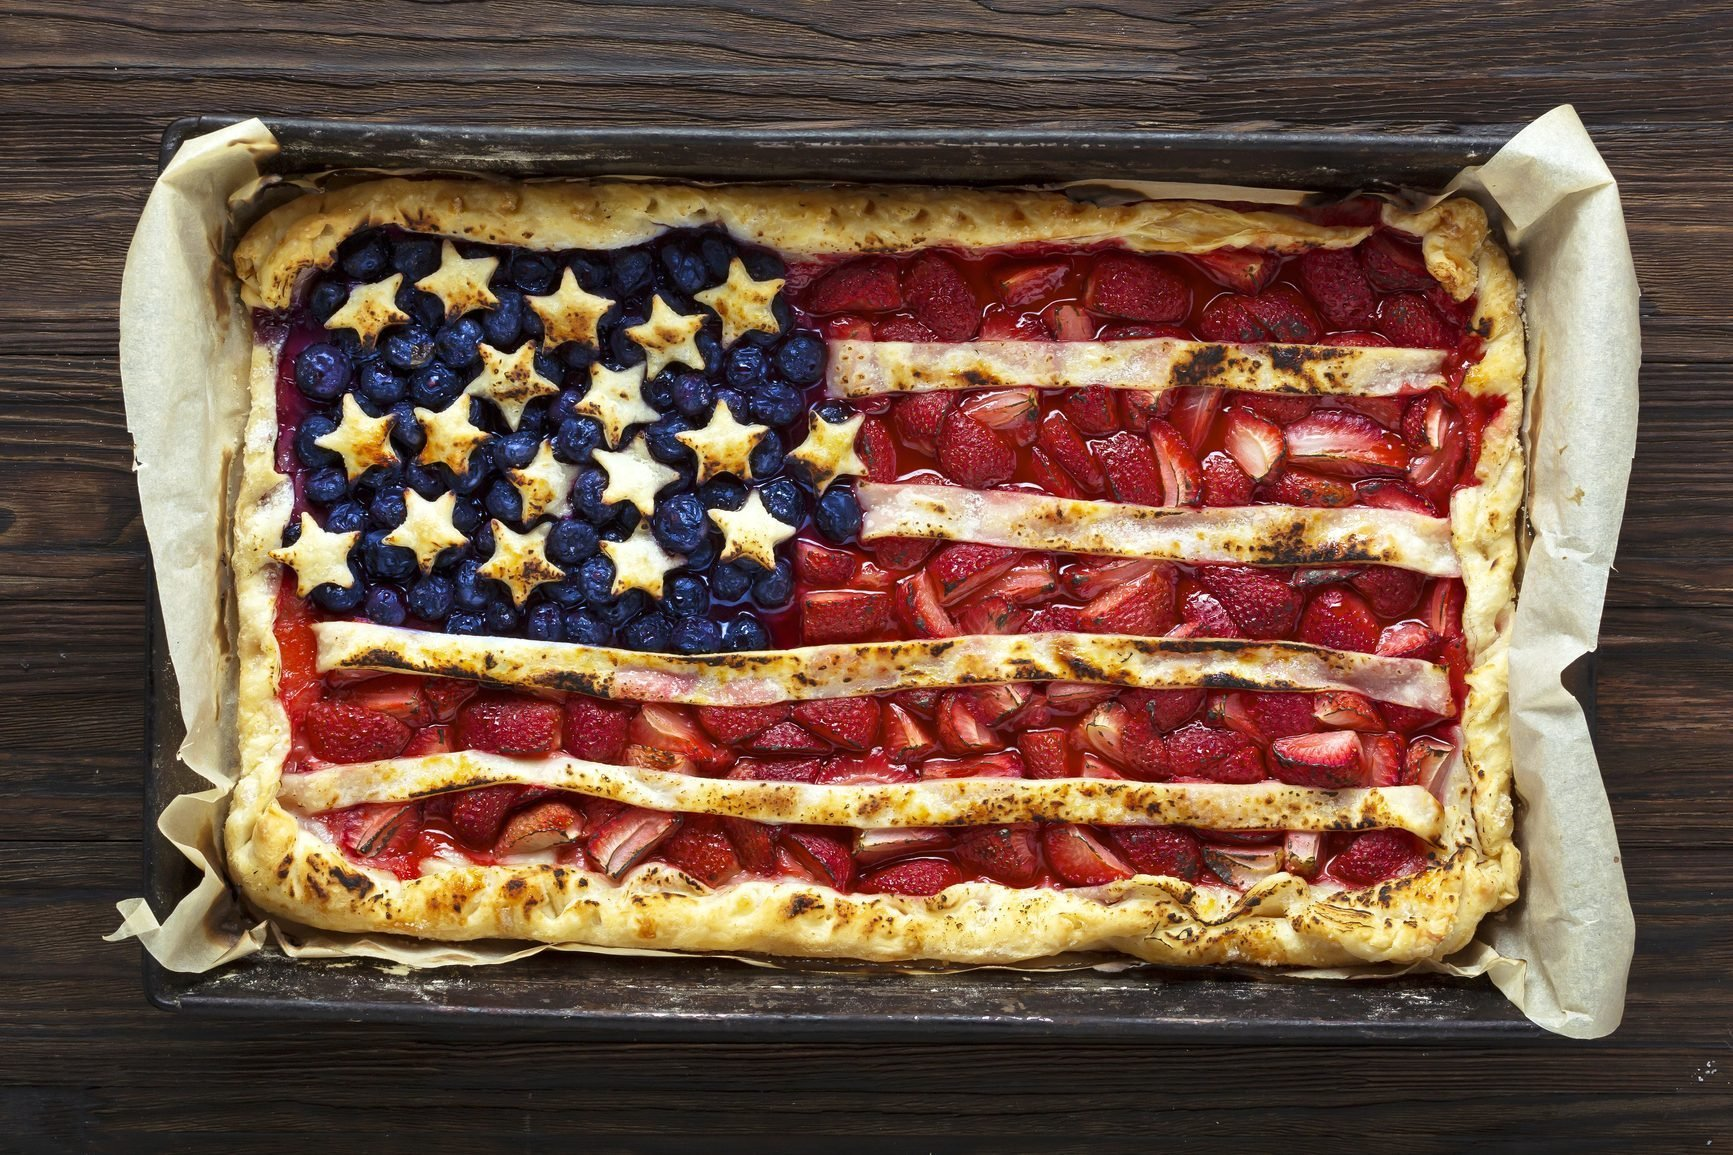 overhead view of a fruit tart designed like the american flag in a rectangular pan on a dark wood countertop